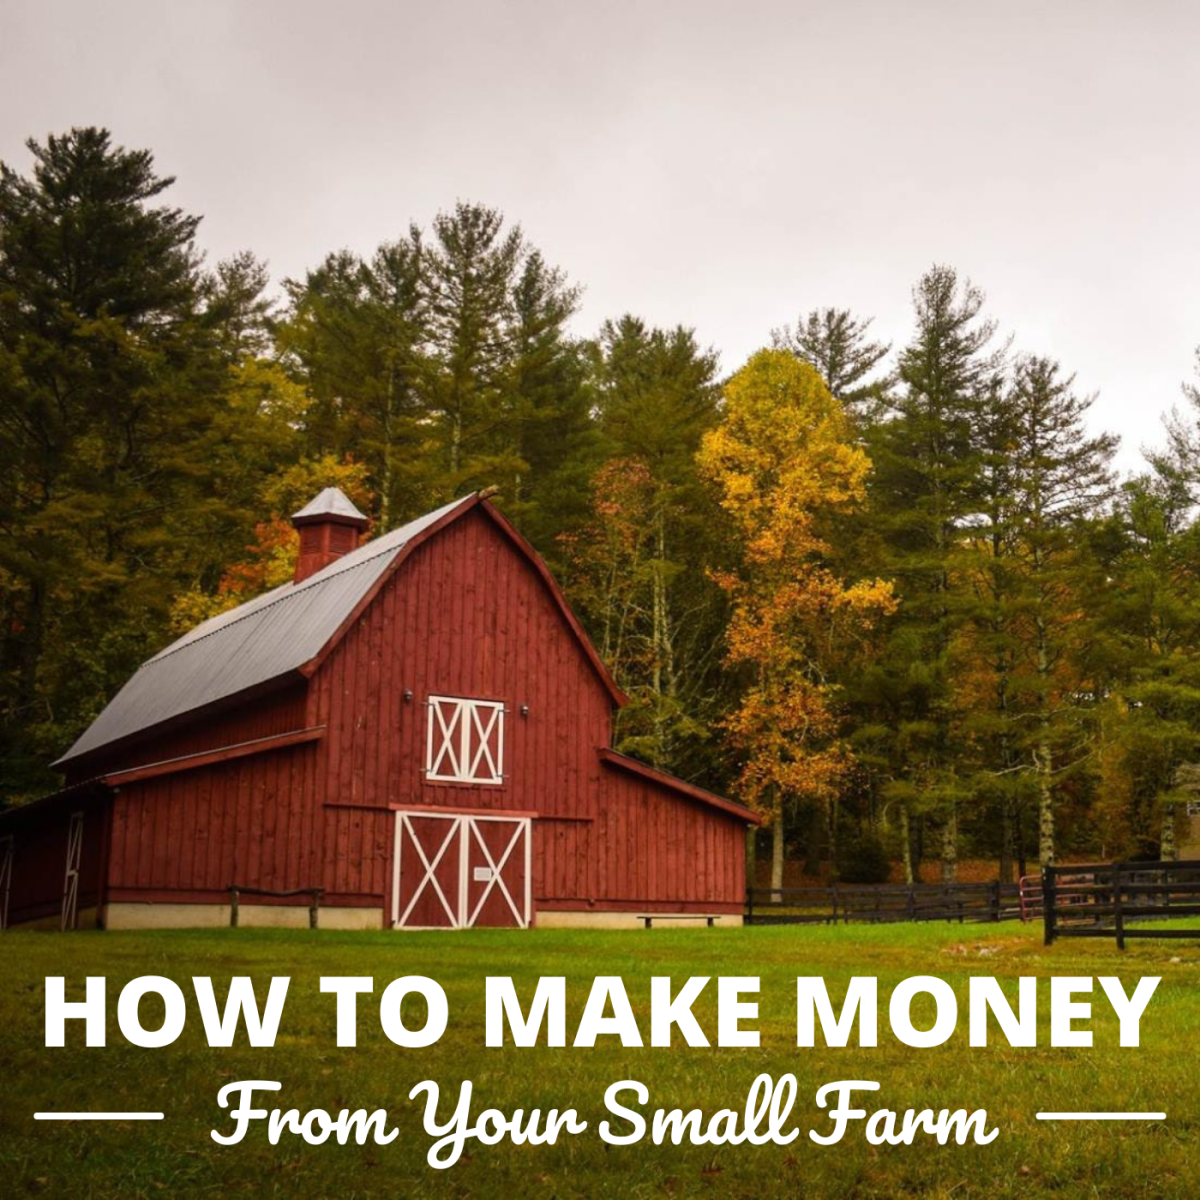 Below are 27 ways to make extra money via your farm or vacant land.